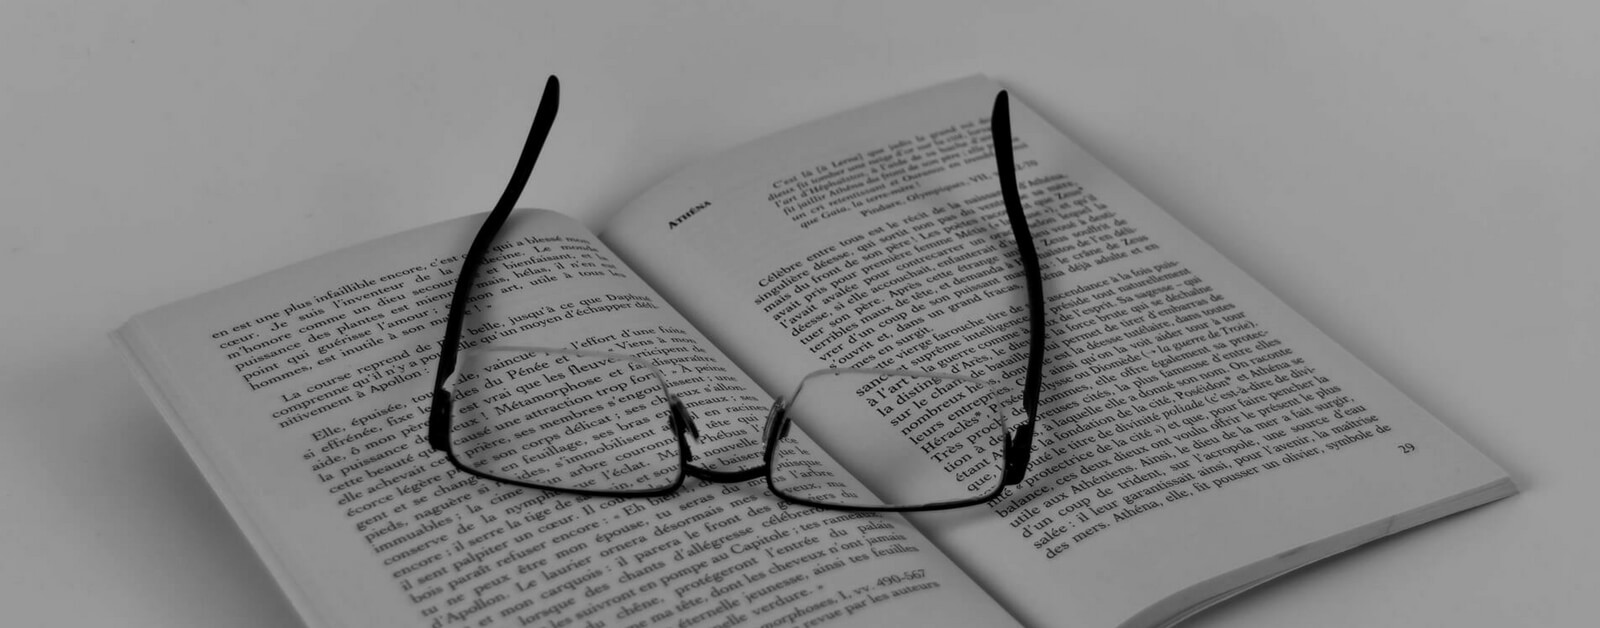 Book in French with reading glasses: French Culture Episodes